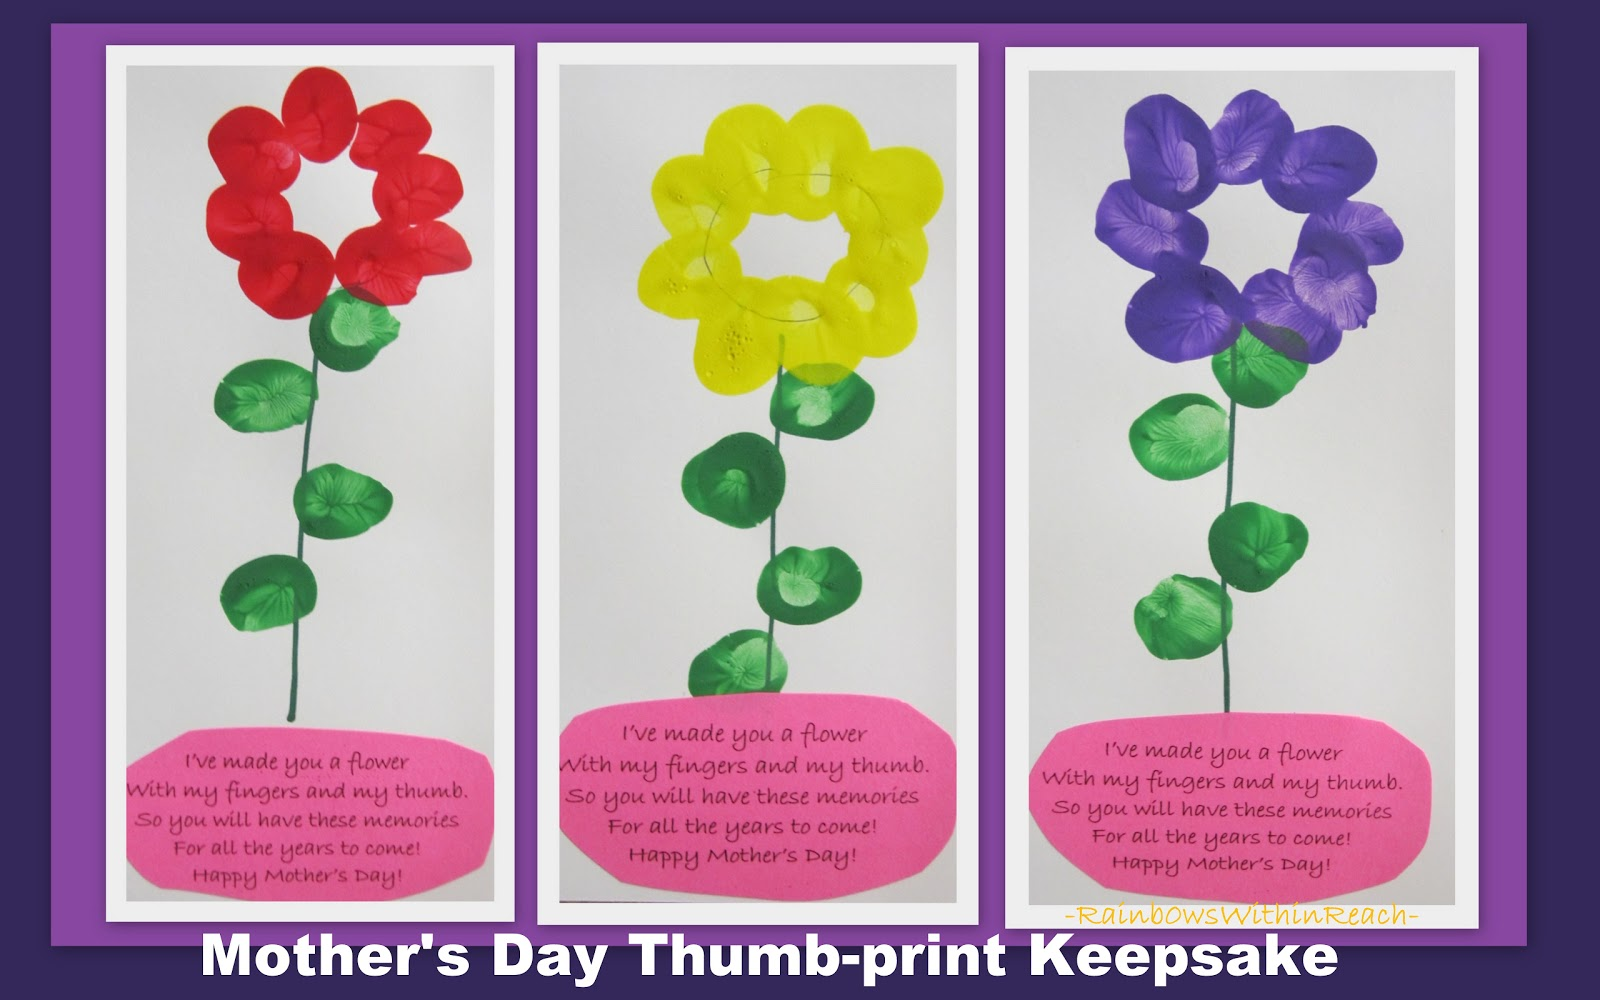 mothers day poems for preschoolers www rainbowswithinreach 742